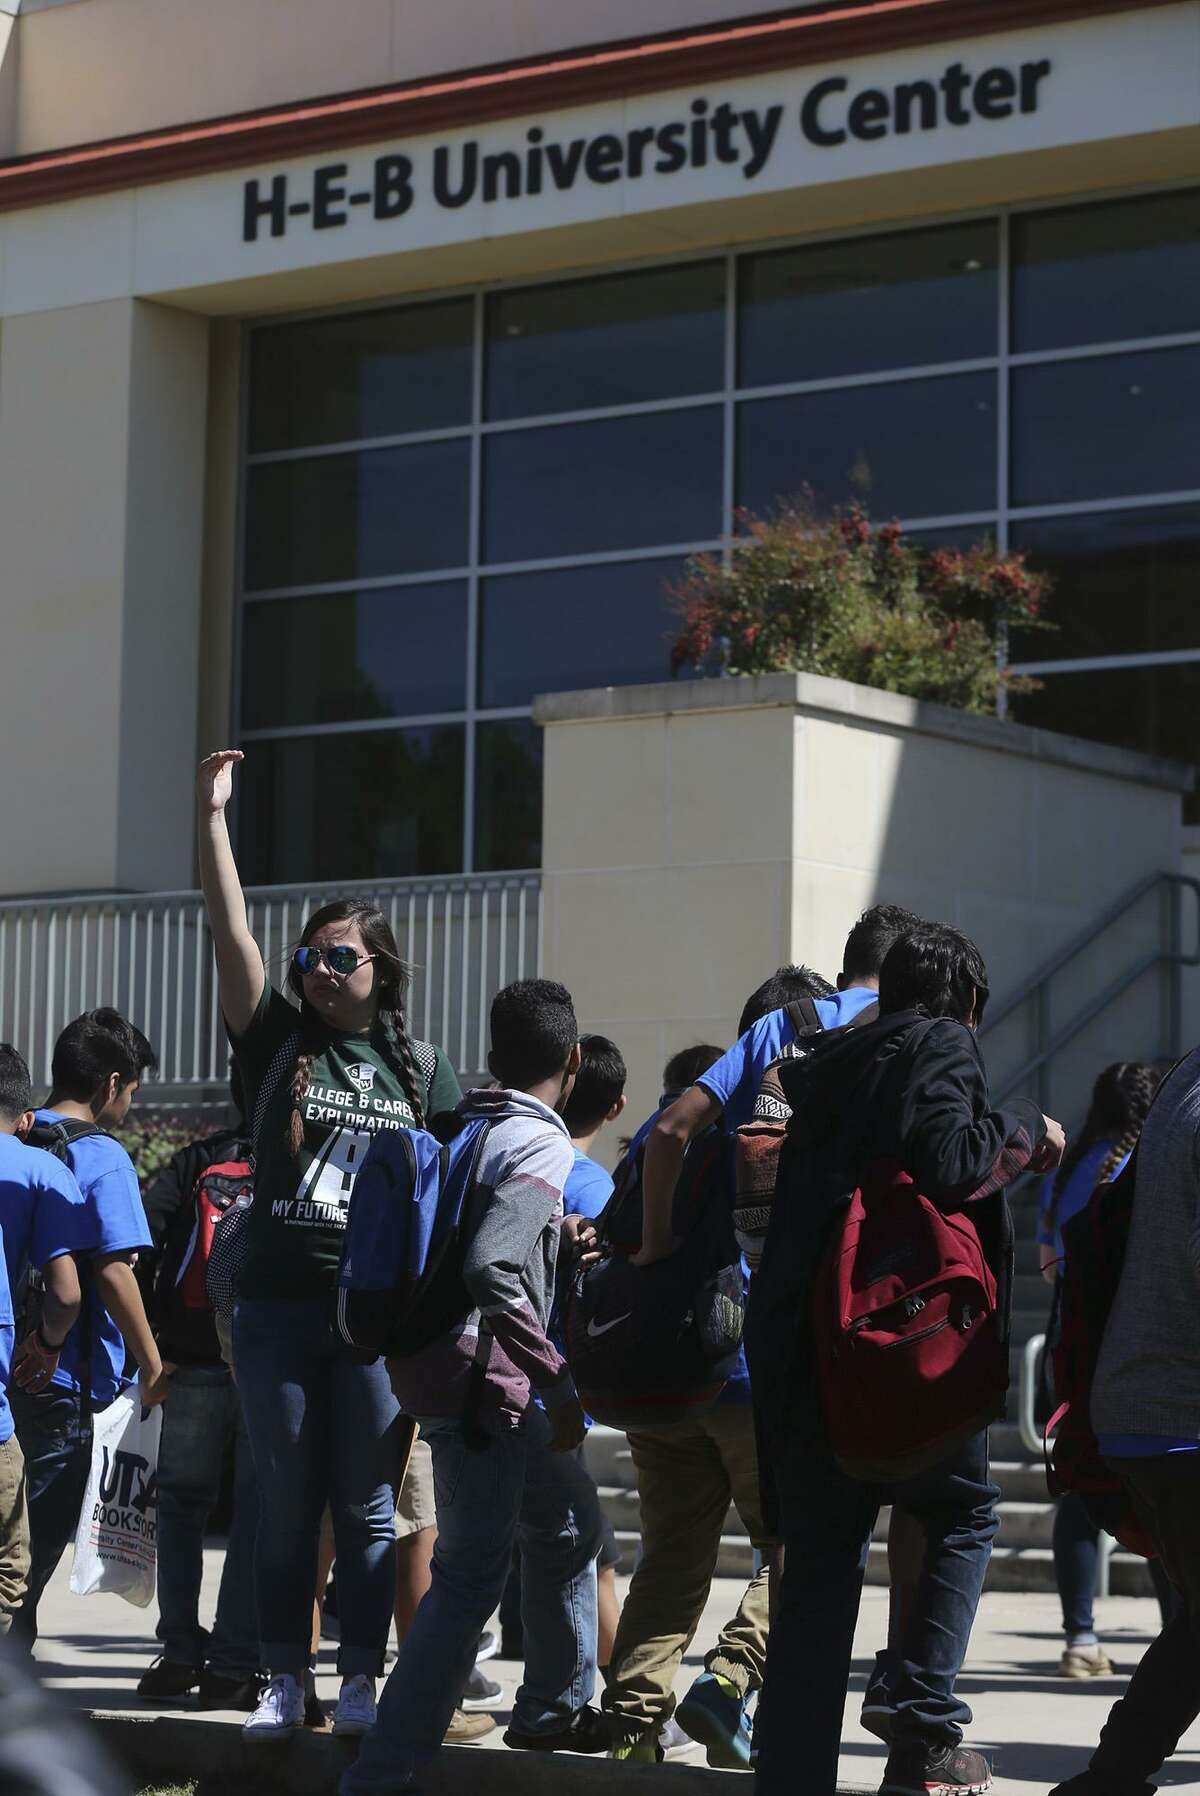 Eighth graderts from Southwest Independent School District middle schools enter the H-E-B University Center during the district's Career Exploration Day in 2016. Scobee Middle School teacher Rosalinda Boblett waves them in. All the district's eighth graders took ninth-grade Alegebra I instead of eighth grade math last year.